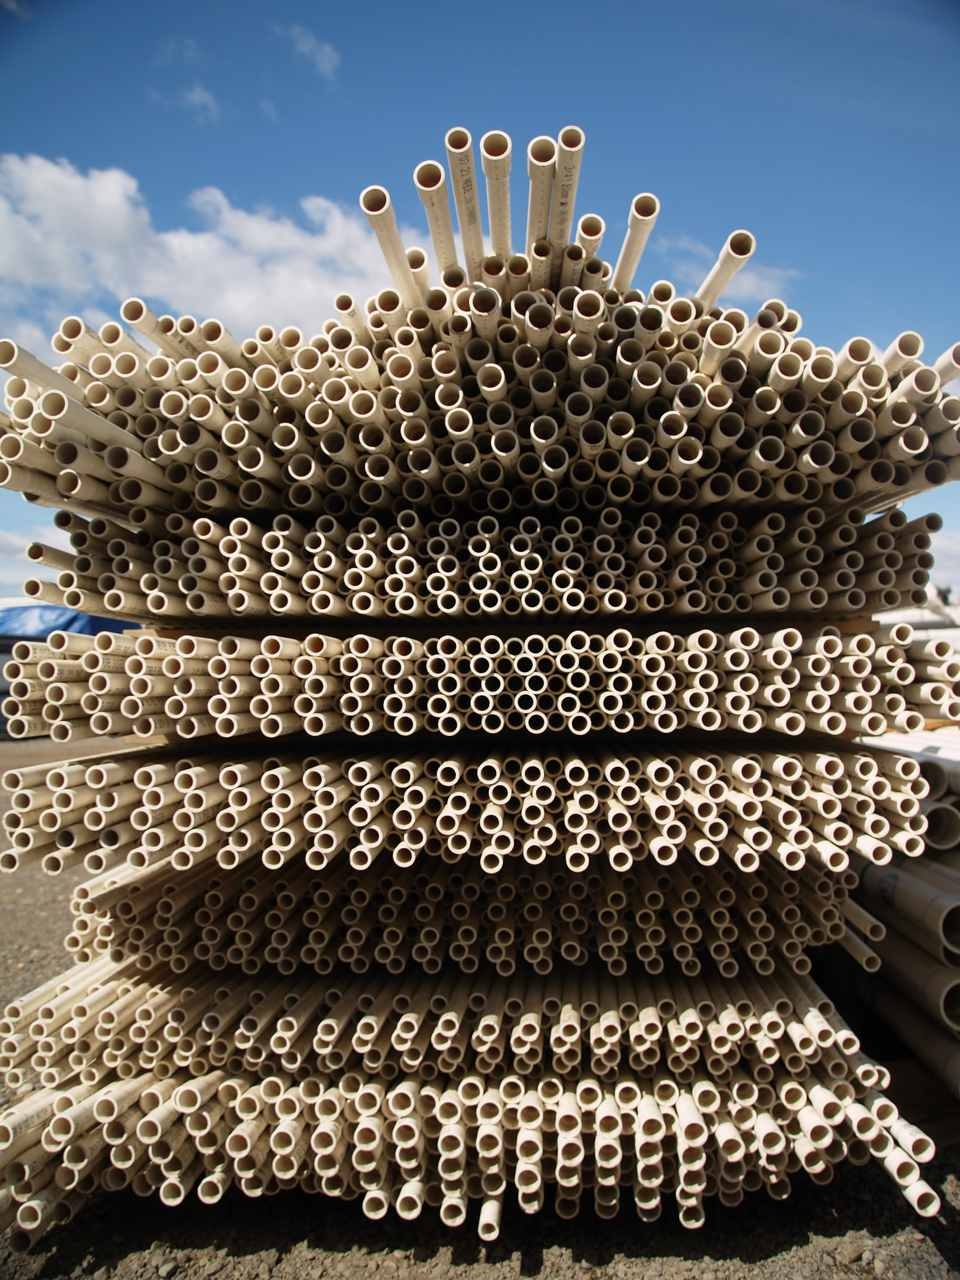 Big stack of PVC piping